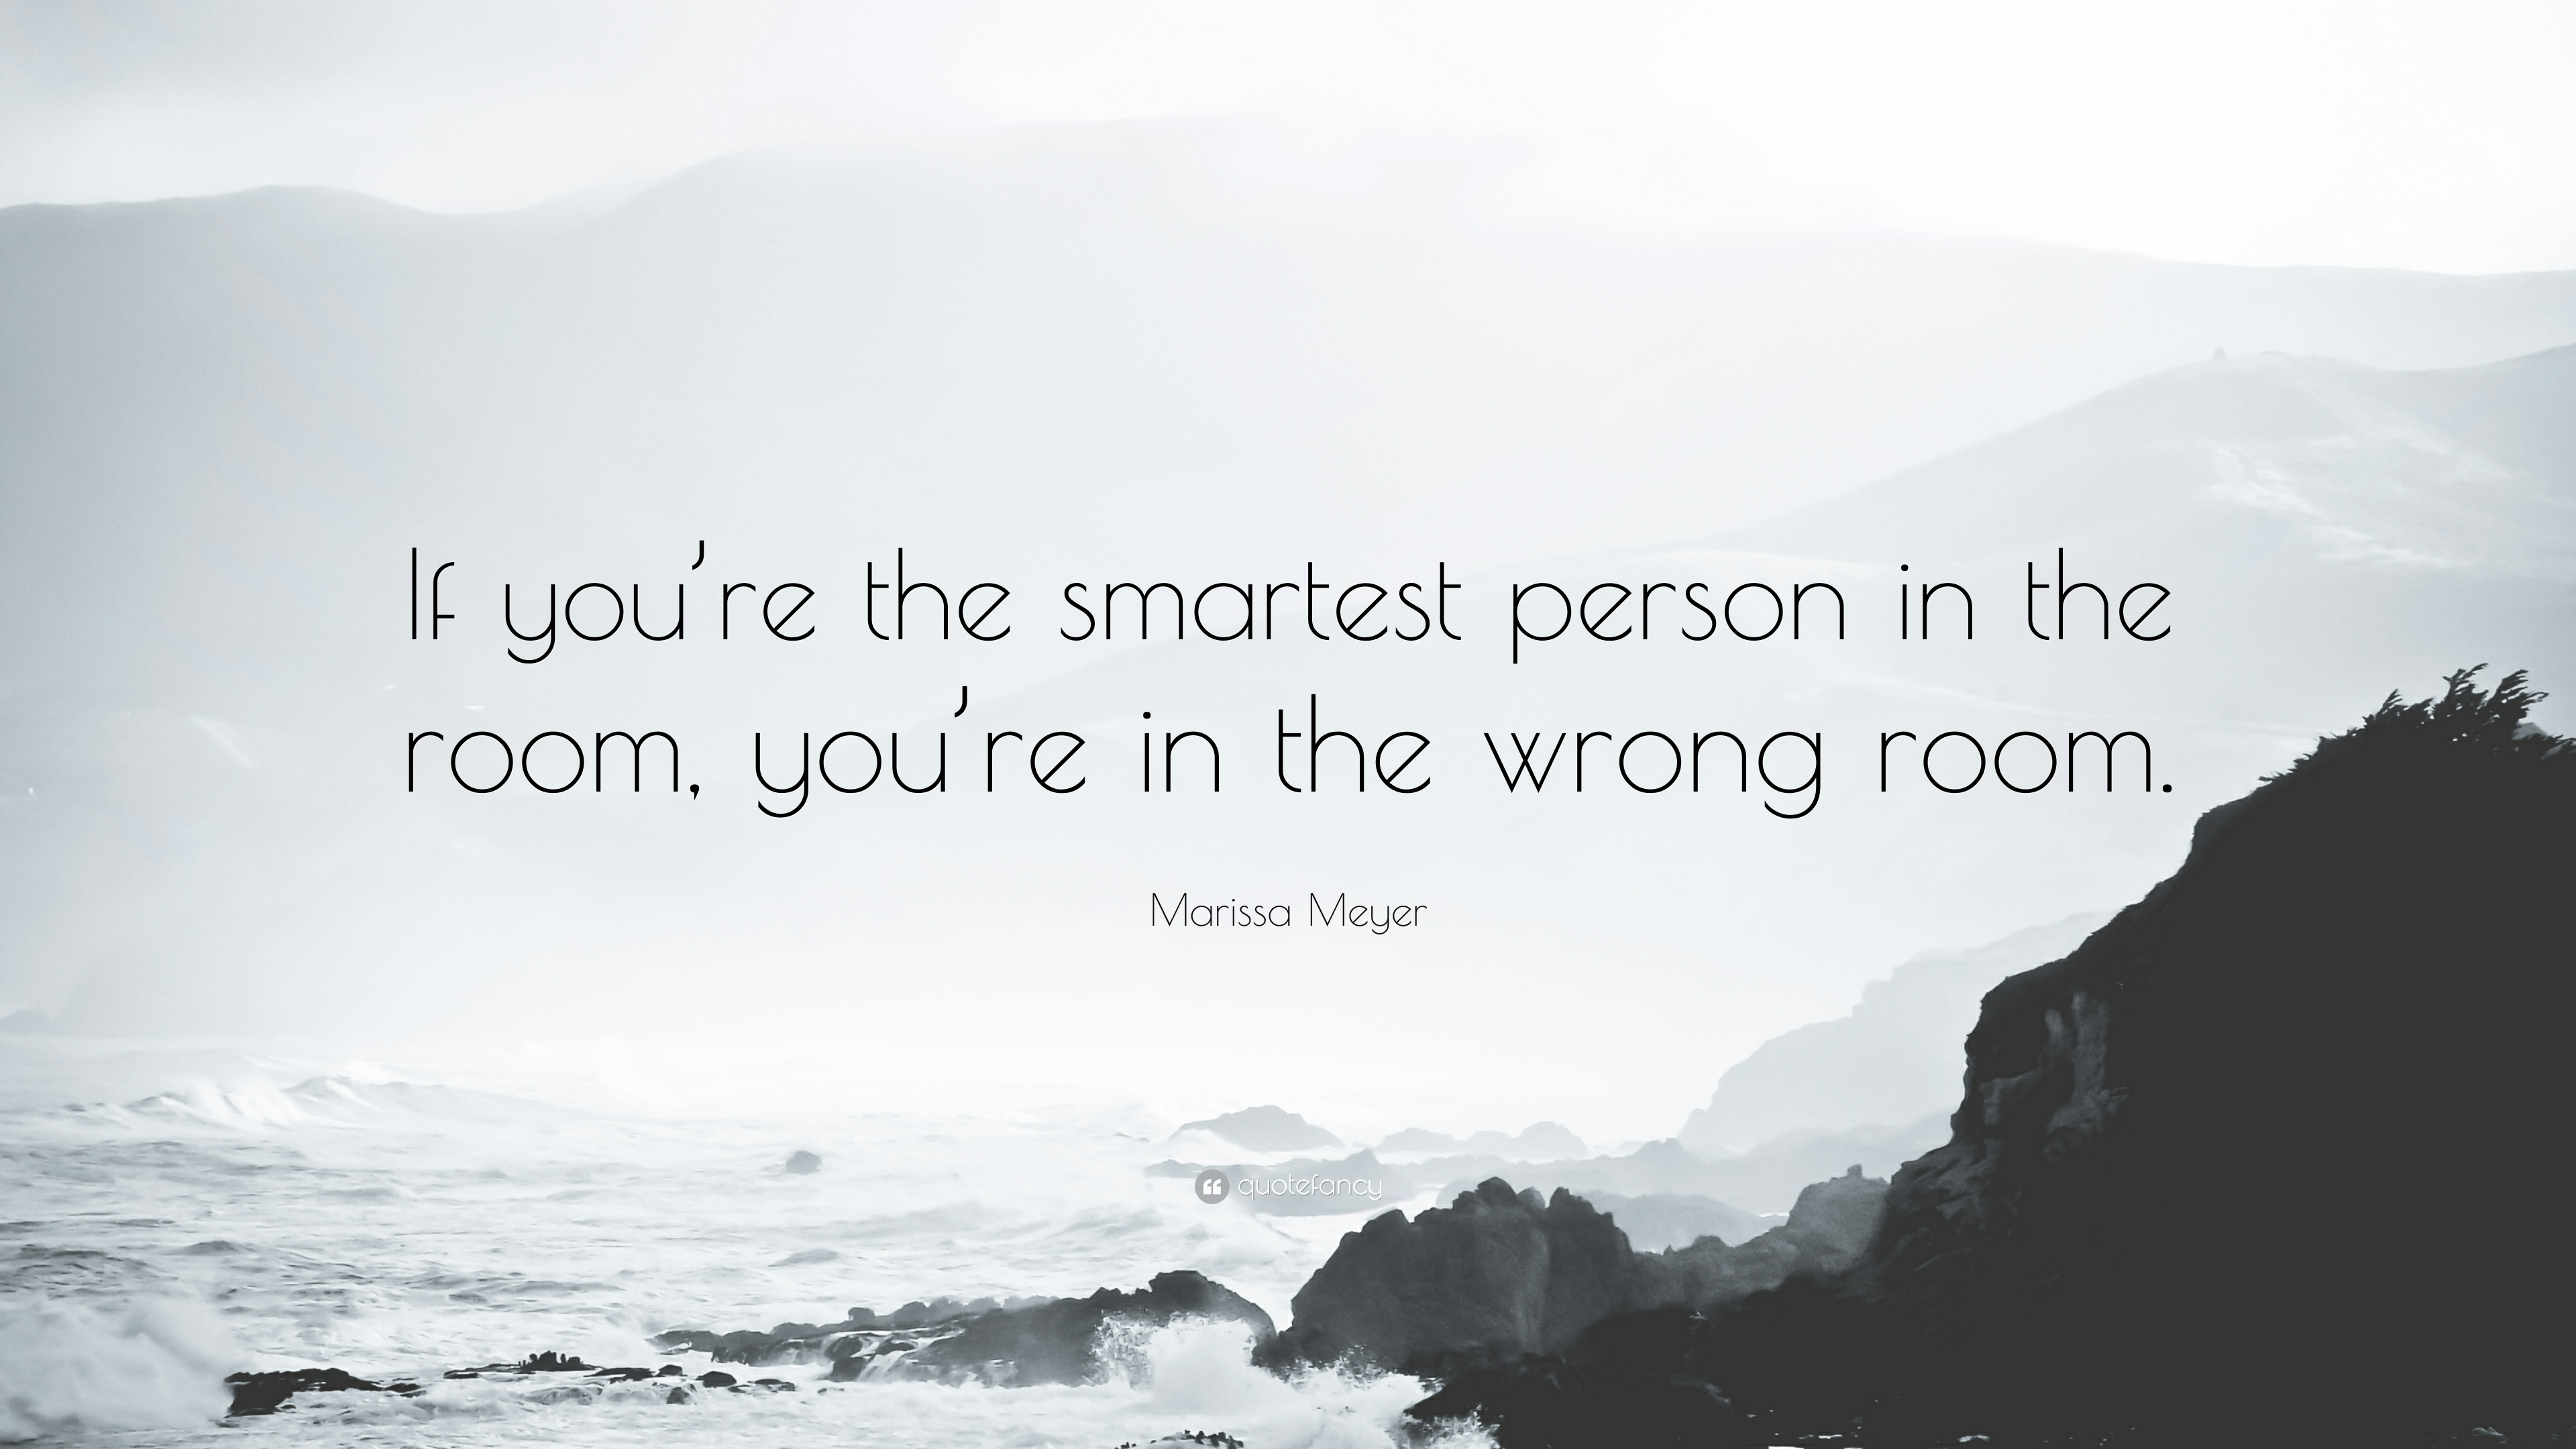 Image result for if you are the smartest person in the room you are in the wrong room